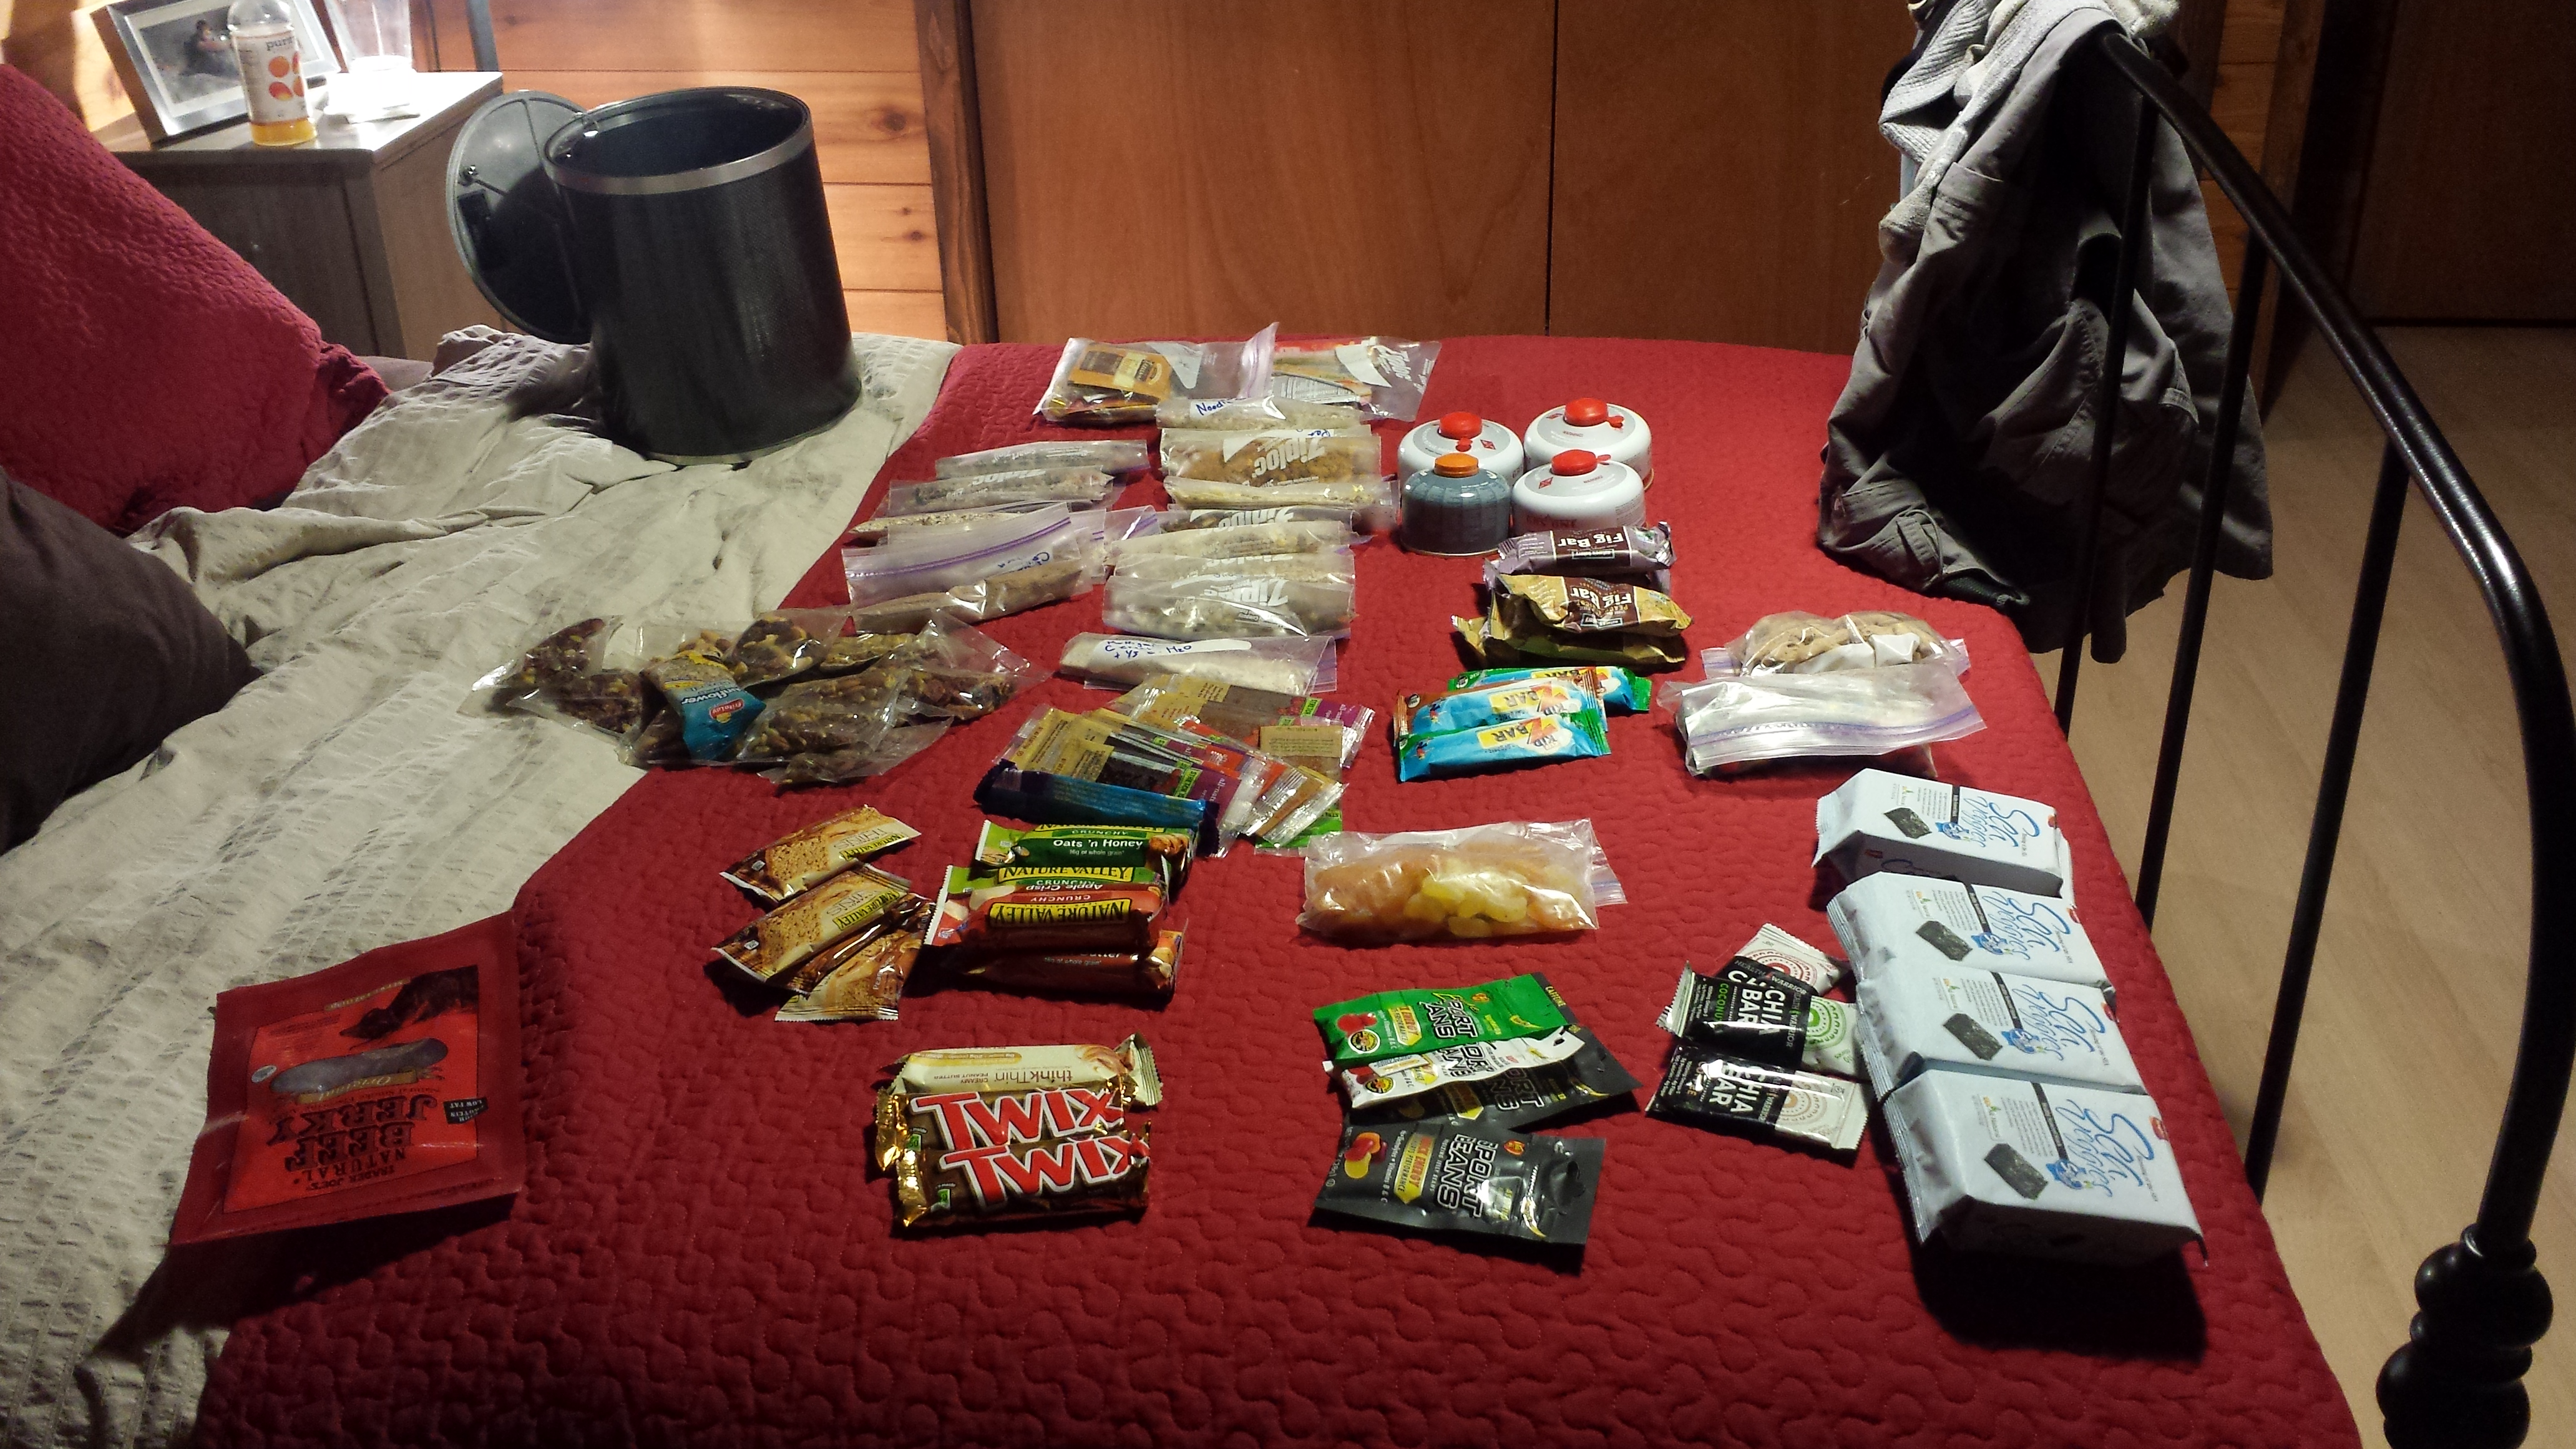 Organizing my food for the next 8 days